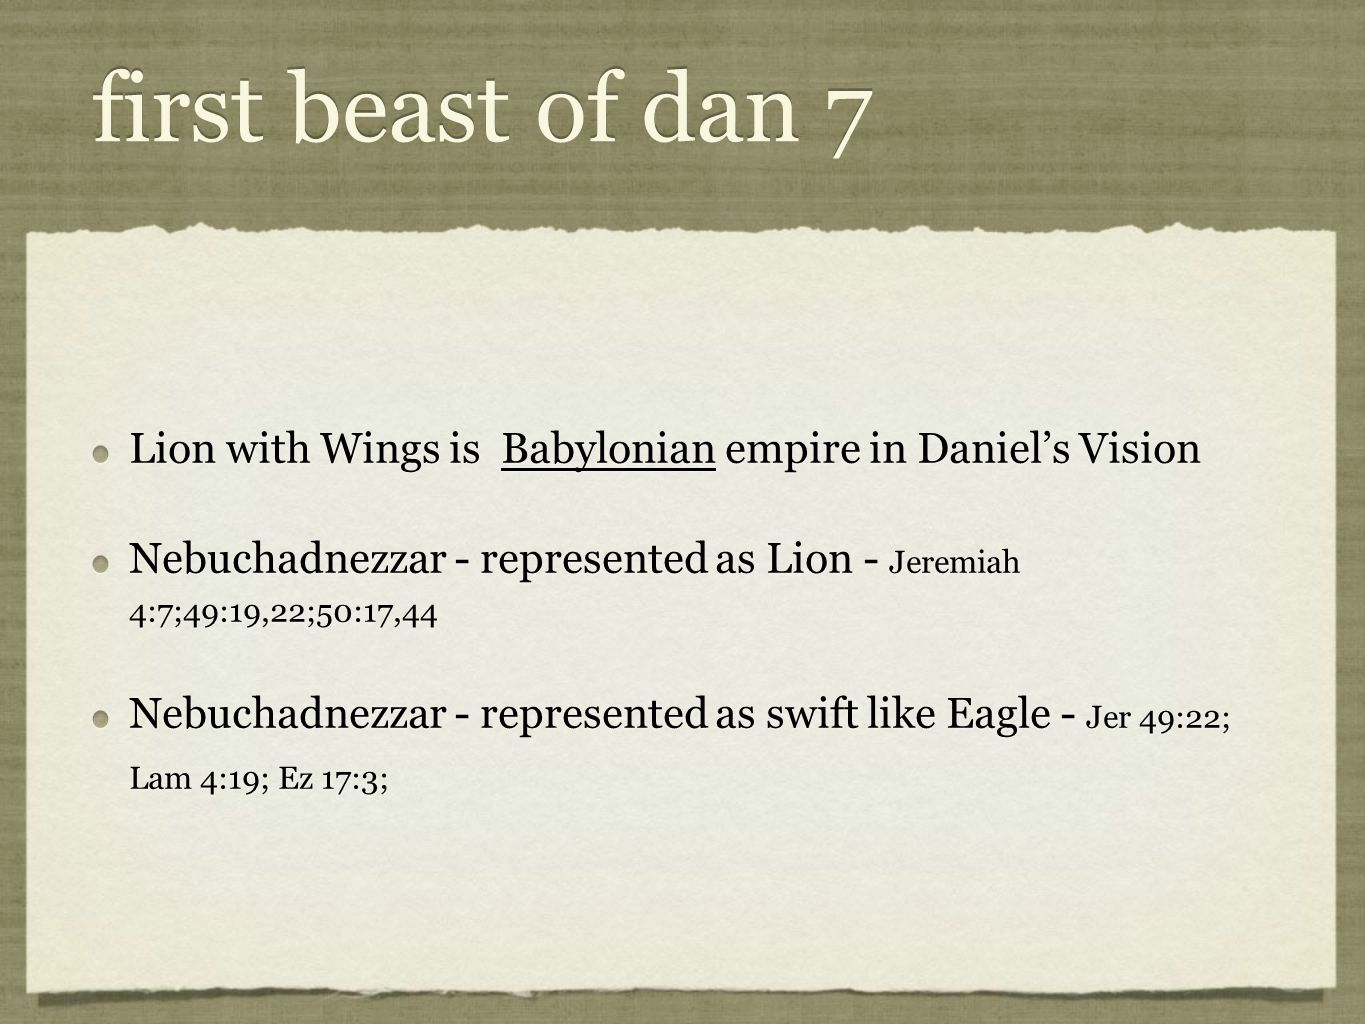 Lion with Wings is Babylonian empire in Daniel's Vision Nebuchadnezzar - represented as Lion - Jeremiah 4:7;49:19,22;50:17,44 Nebuchadnezzar - represented as swift like Eagle - Jer 49:22; Lam 4:19; Ez 17:3; Lion with Wings is Babylonian empire in Daniel's Vision Nebuchadnezzar - represented as Lion - Jeremiah 4:7;49:19,22;50:17,44 Nebuchadnezzar - represented as swift like Eagle - Jer 49:22; Lam 4:19; Ez 17:3;